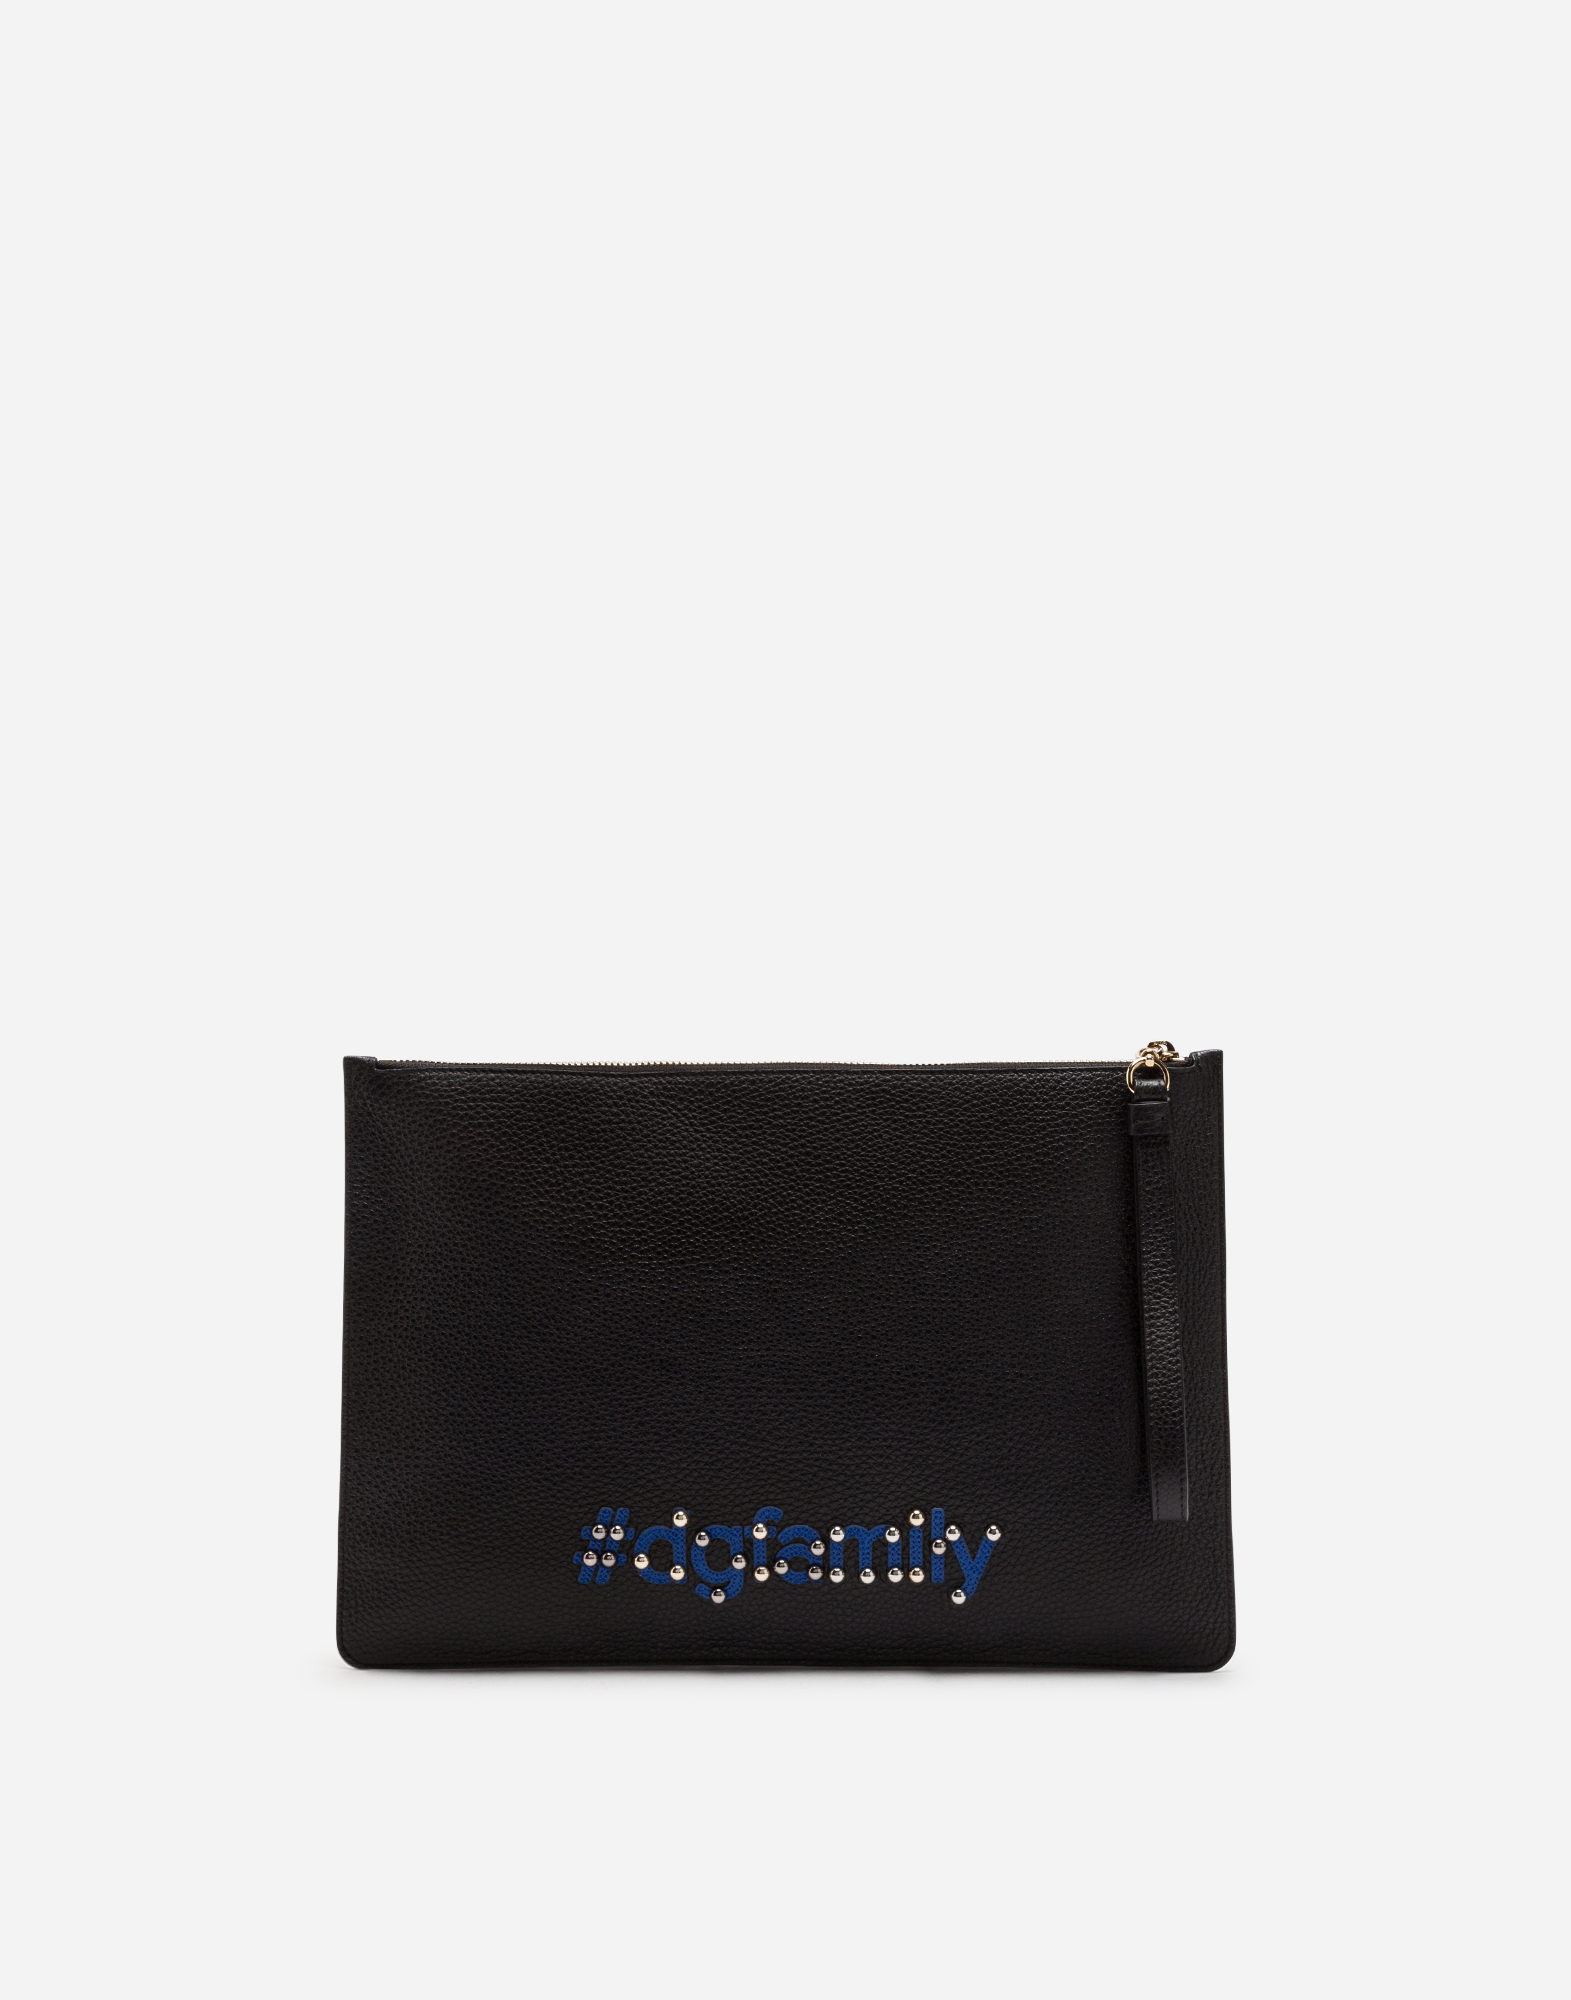 LARGE CLUTCH IN DRUMMED CALFSKIN WITH DESIGNERS' PATCHES